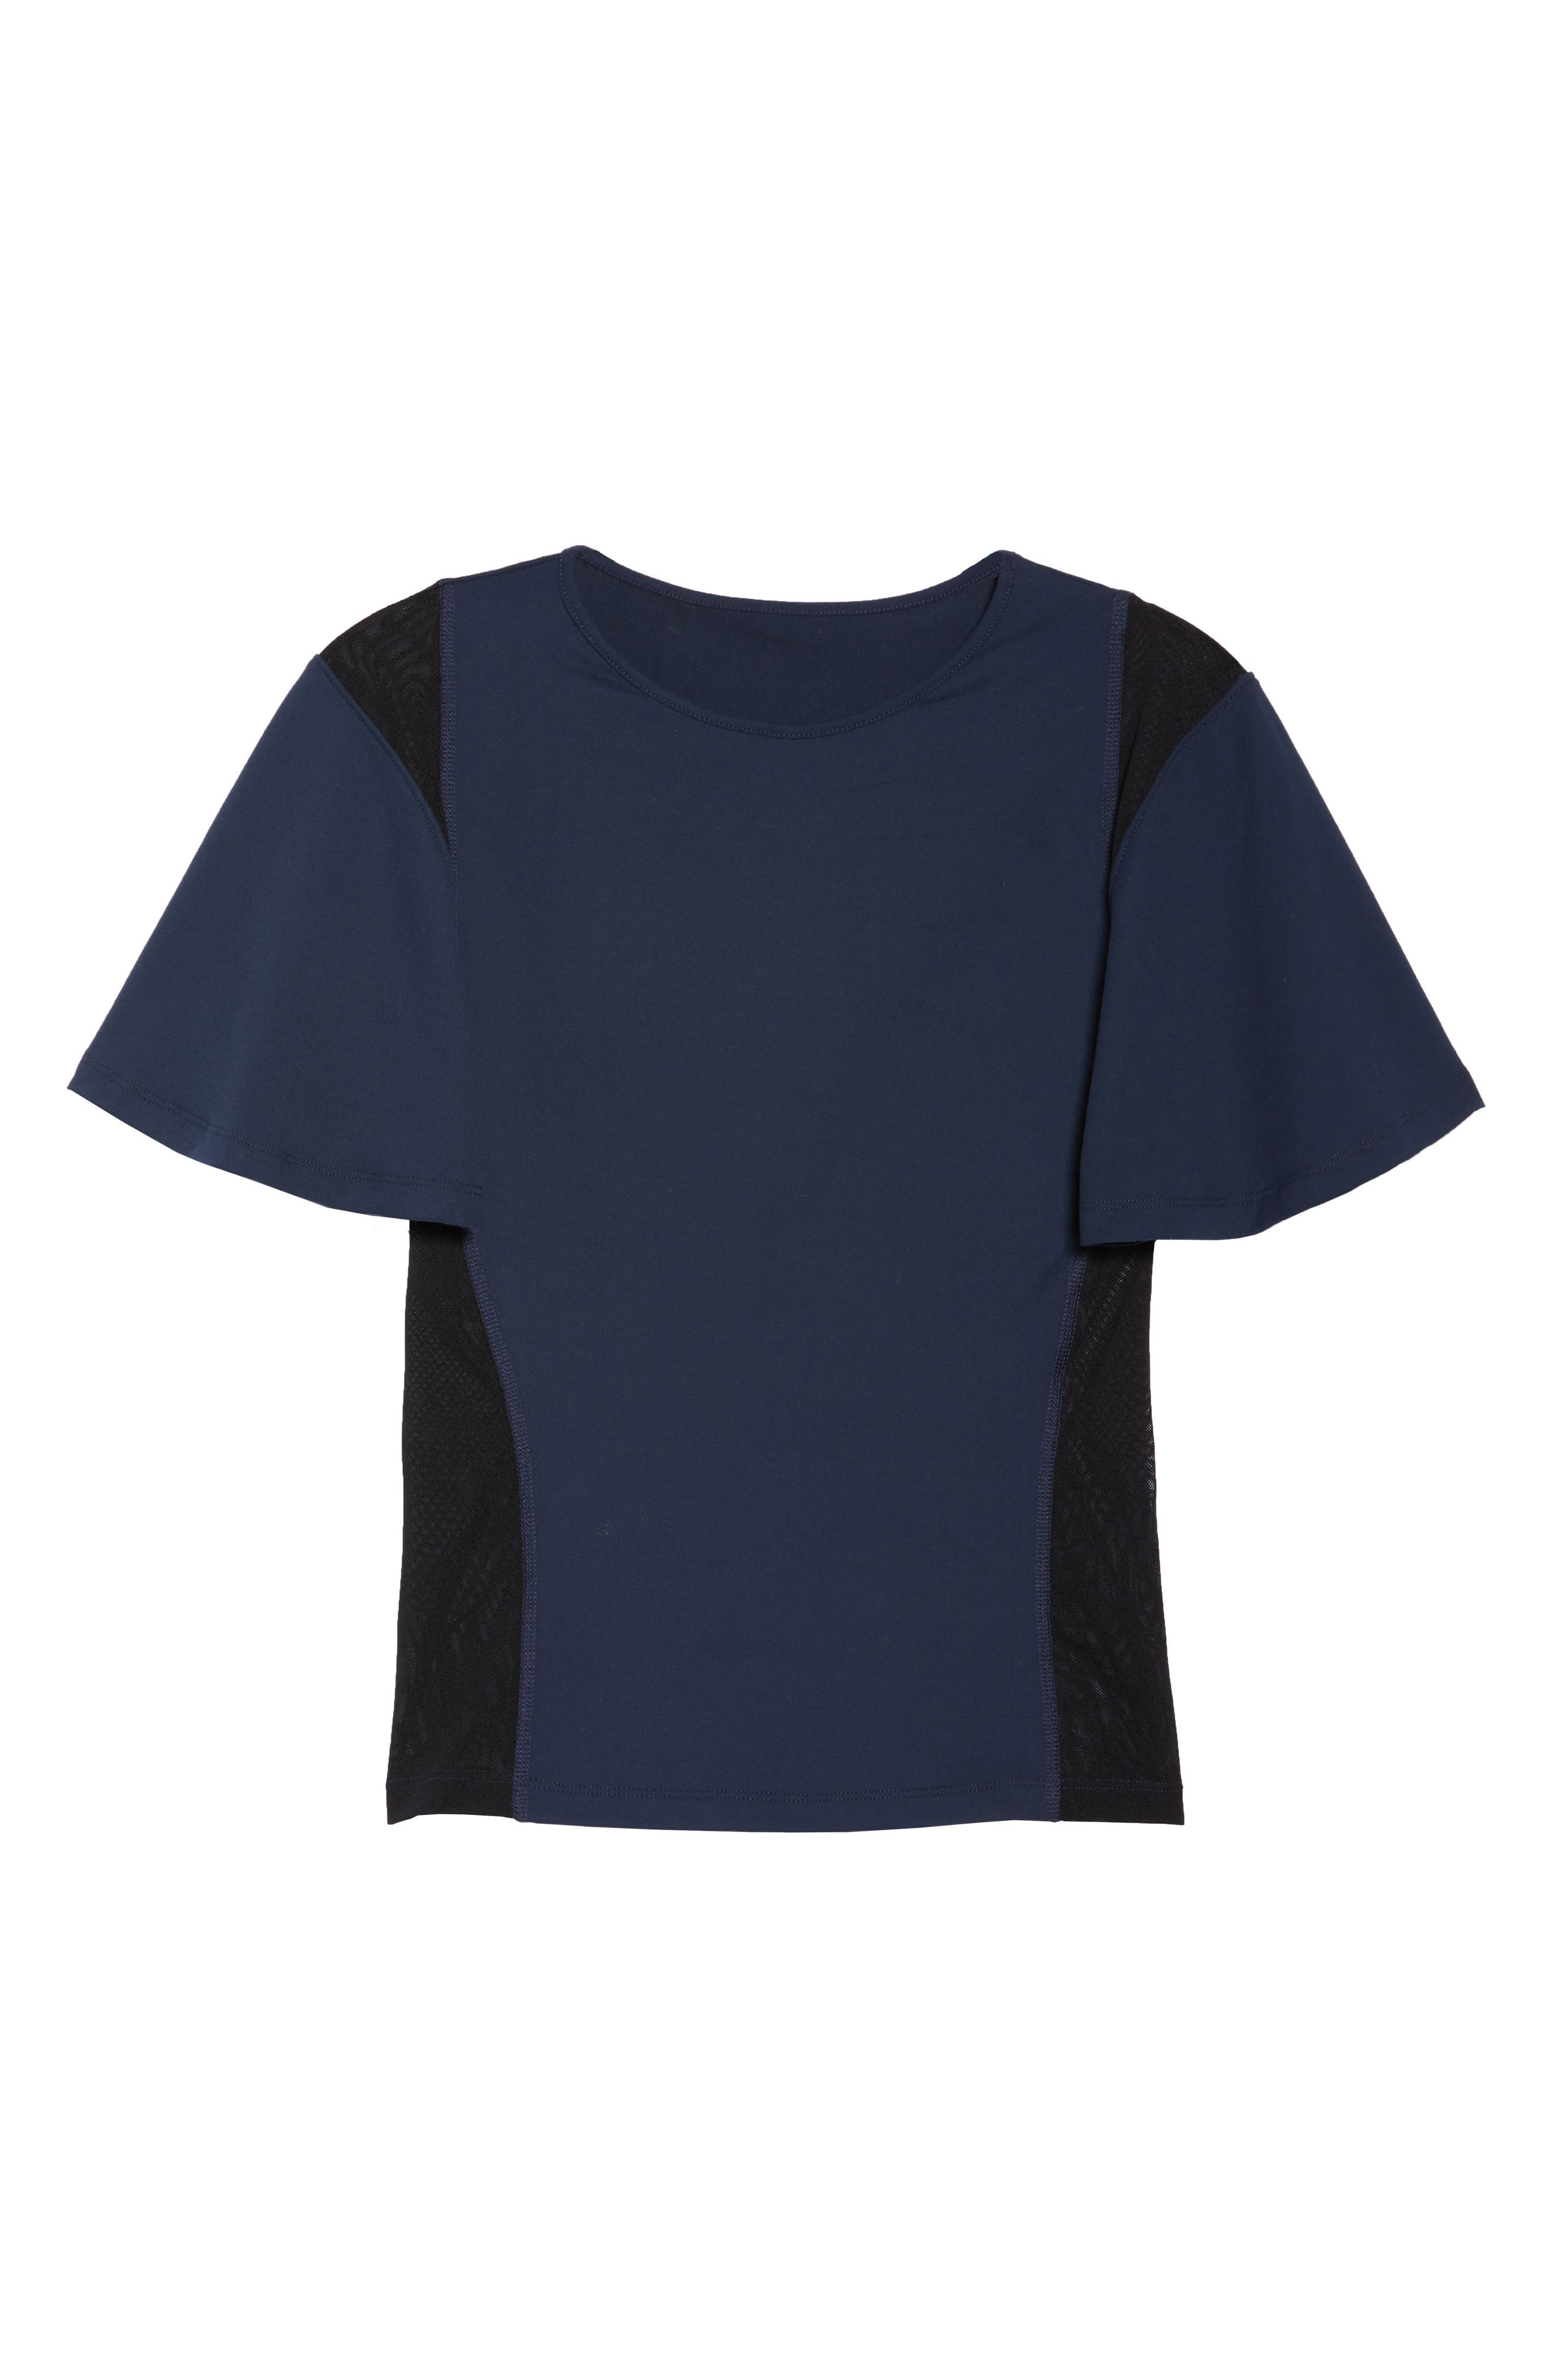 BoomBoom Athletica Wing Sleeve Tee,                             Alternate thumbnail 7, color,                             400